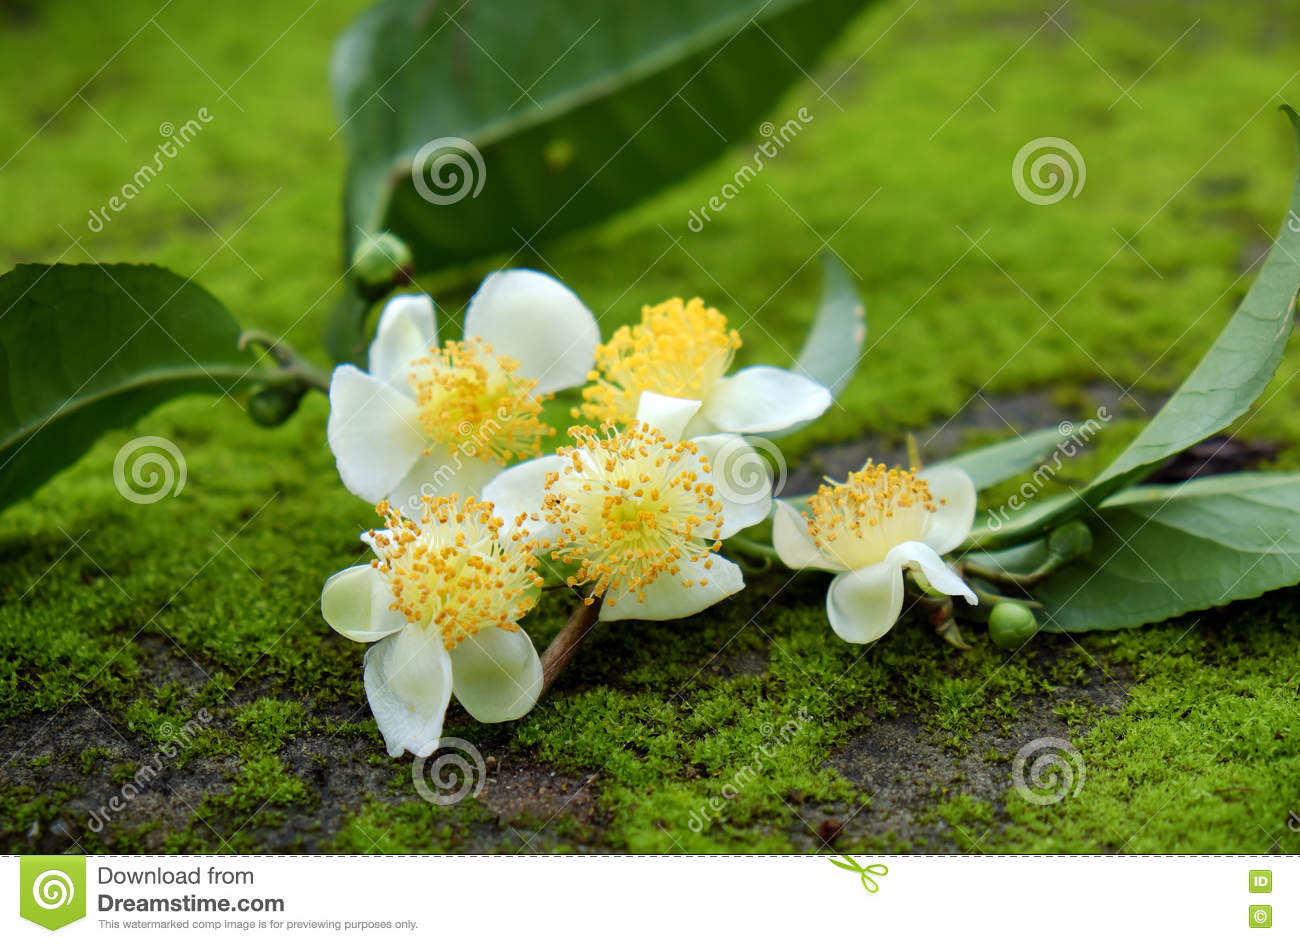 Tea Leaf And Tea Flower Stock Image Image Of Abstract 73721561